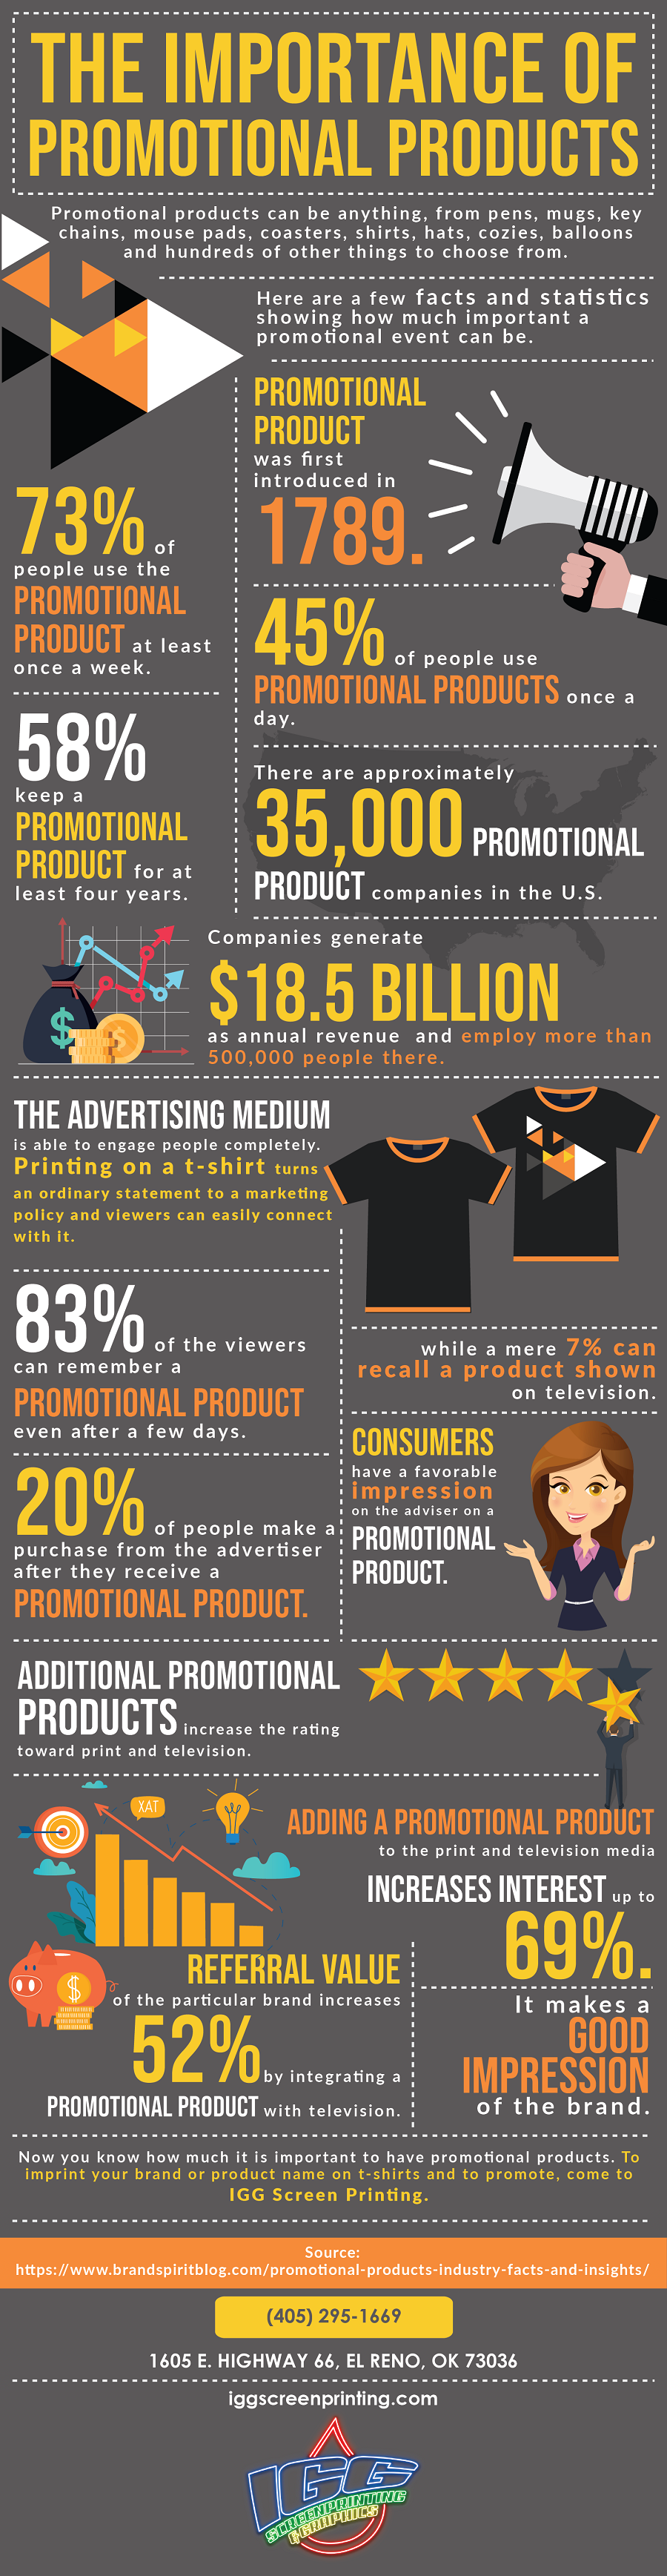 The Importance of Promotional Products.png